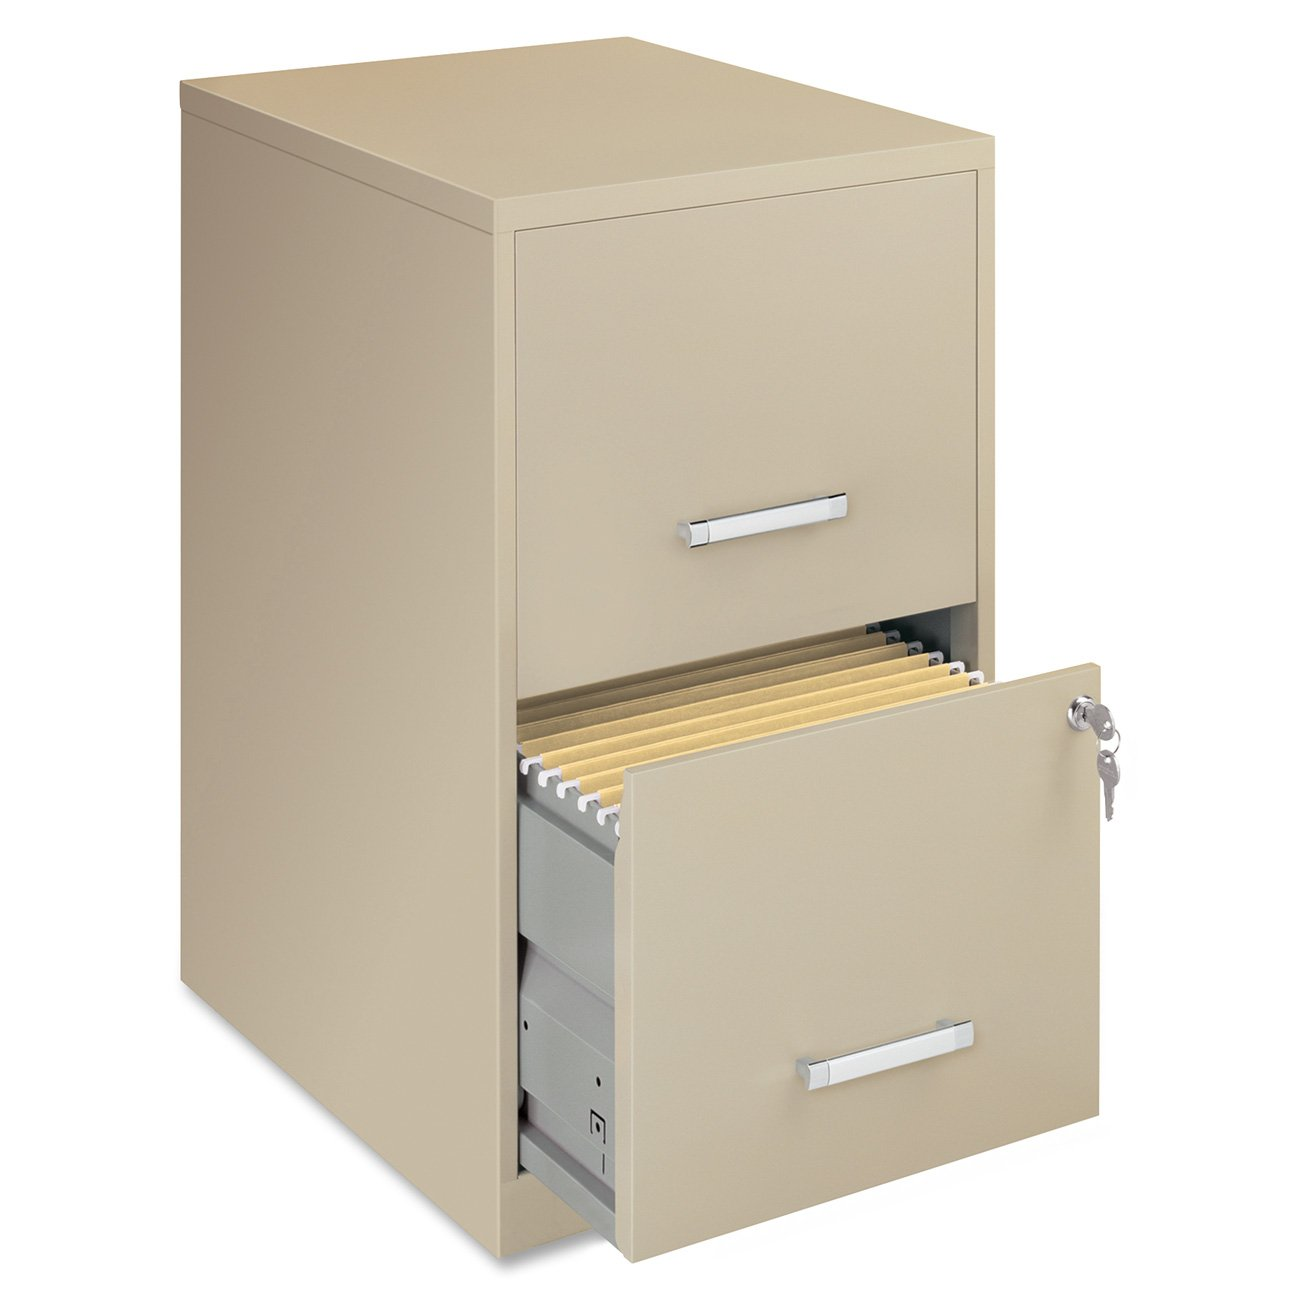 Lorell 14340 18 Deep 2-Drawer File Cabinet, Putty